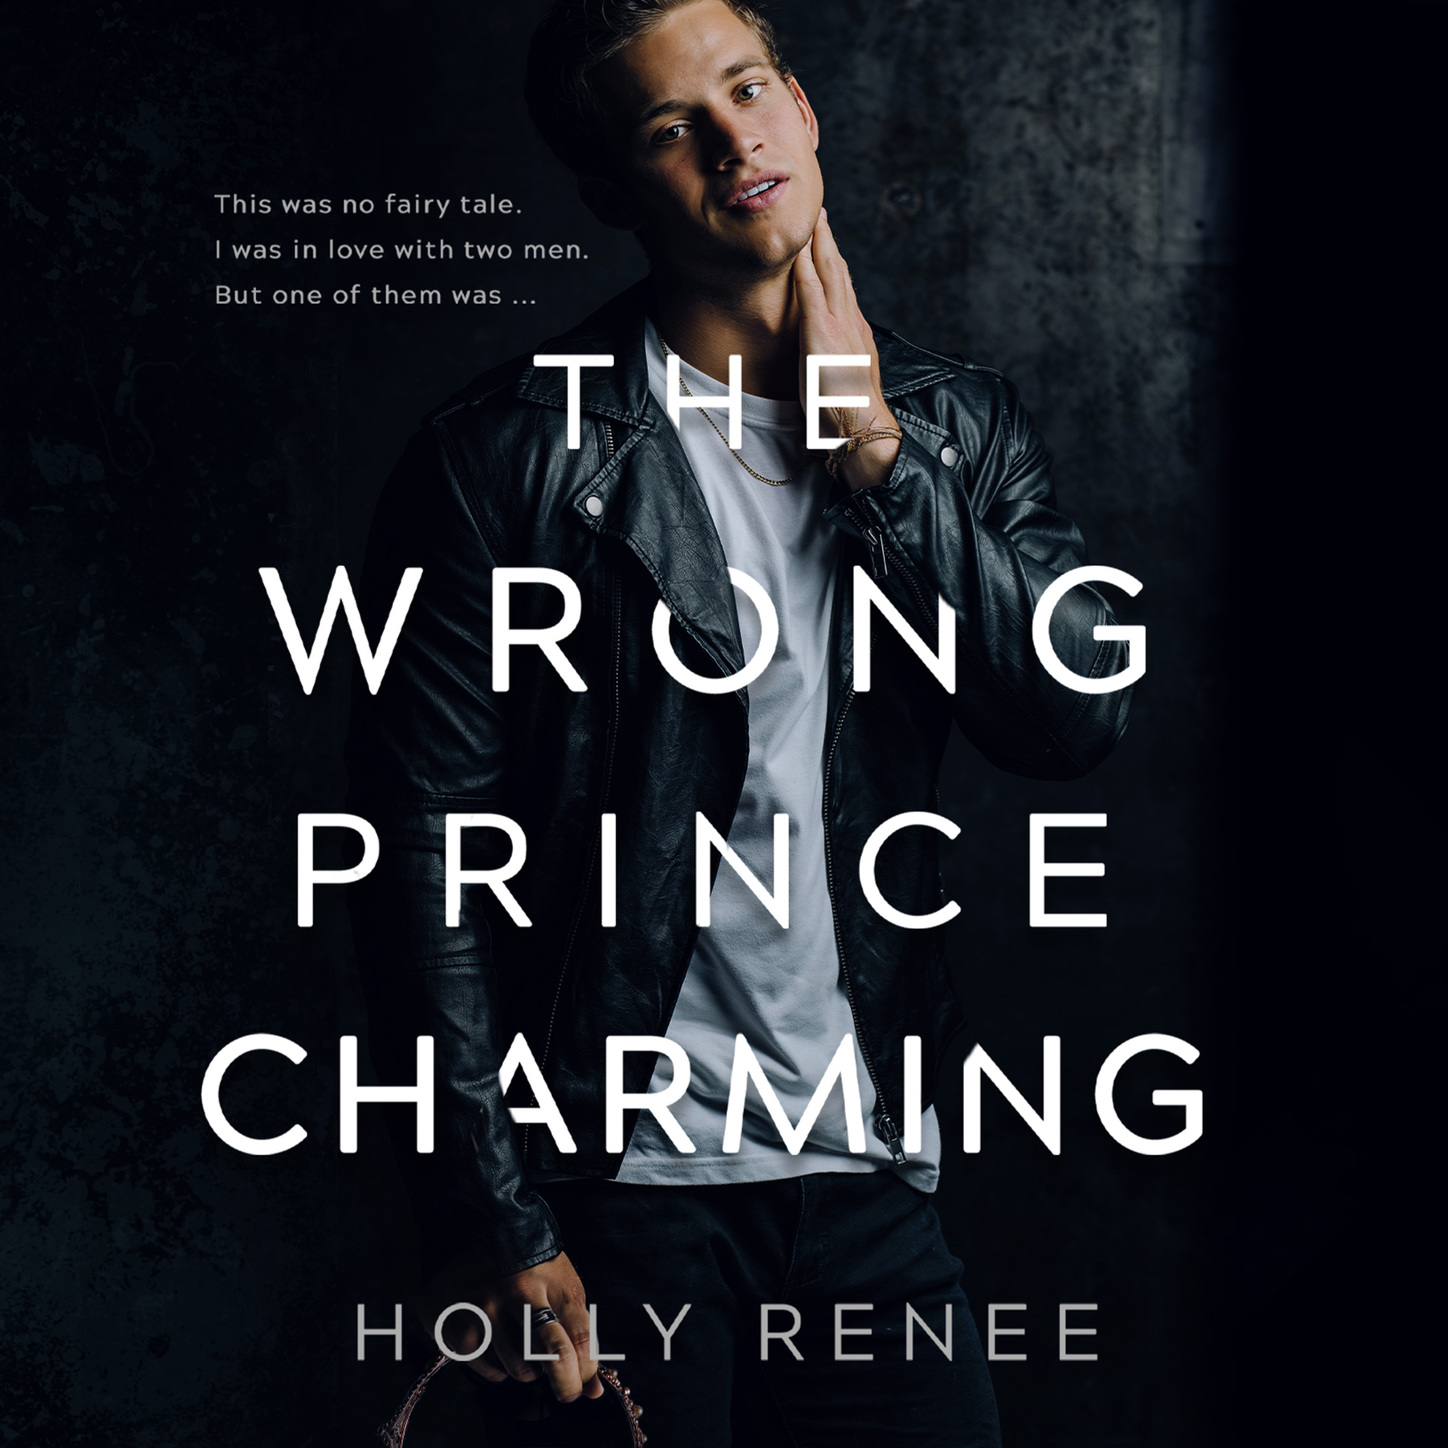 Holly Renee The Wrong Prince Charming (Unabridged)